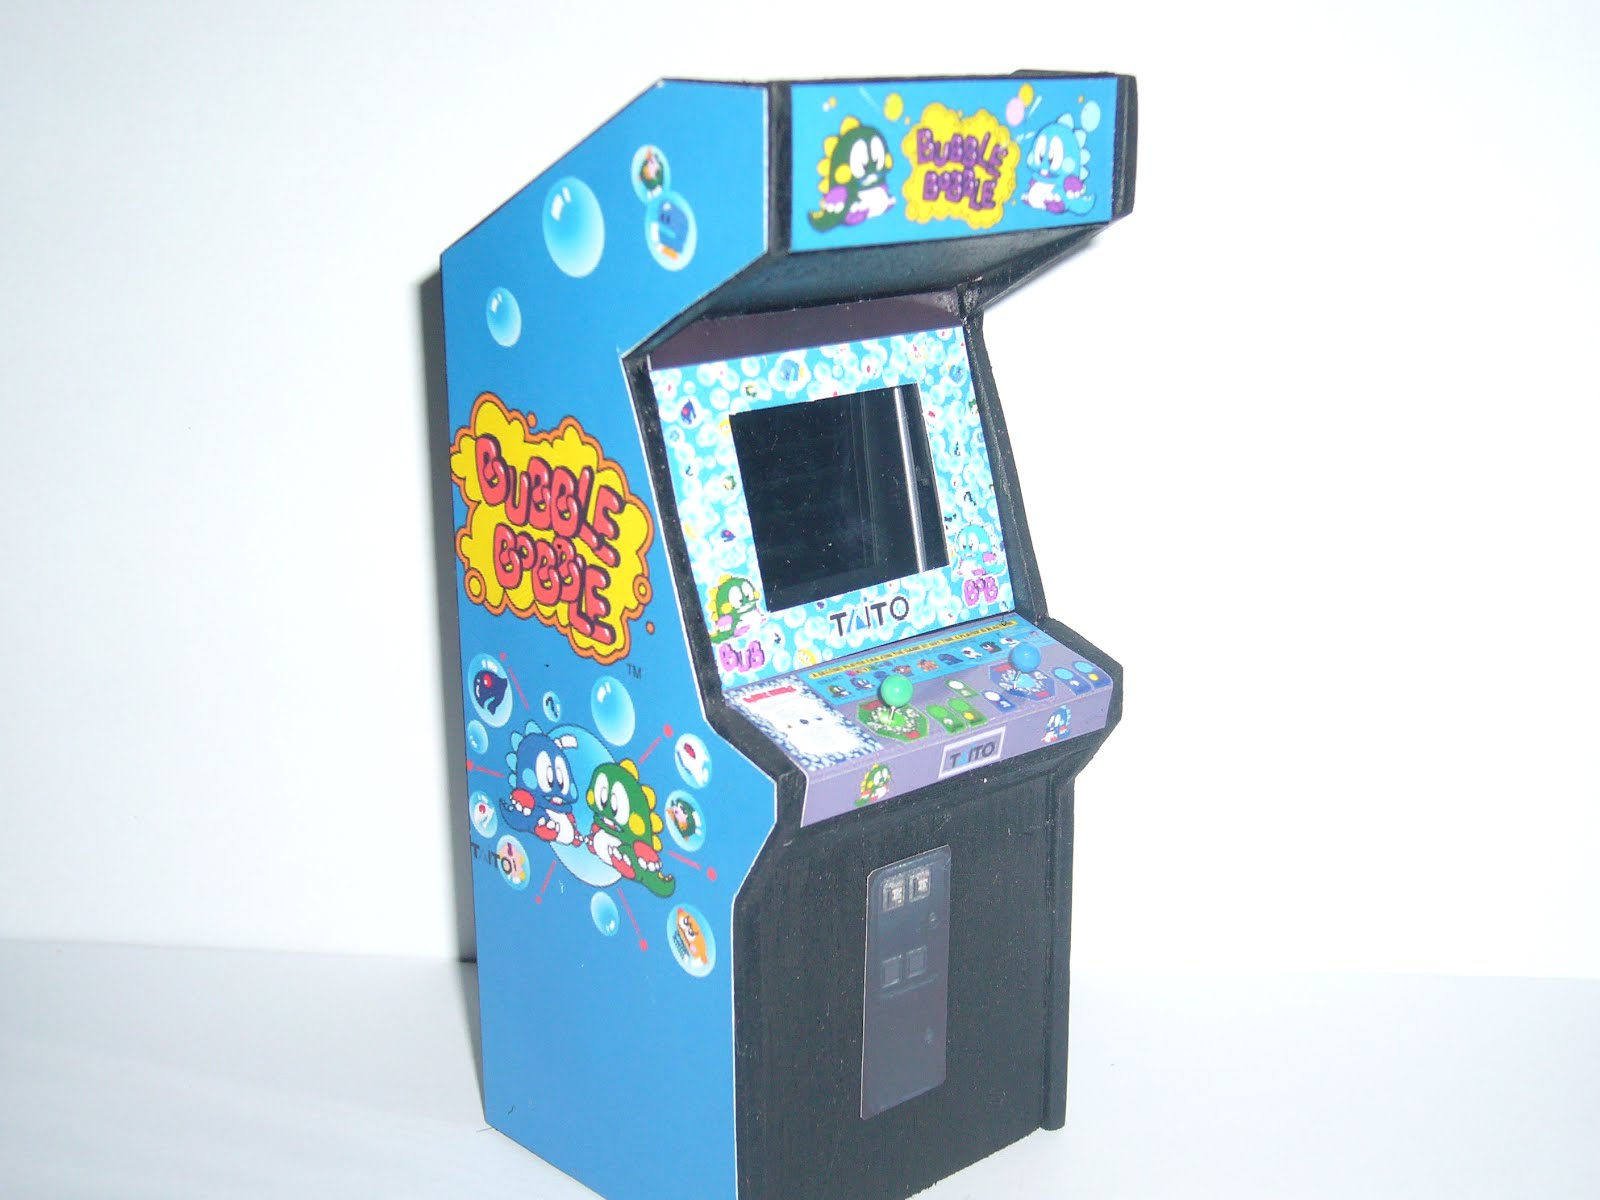 Retro Heart Bubble Bobble With Real 1 5 Inch Lcd Screen